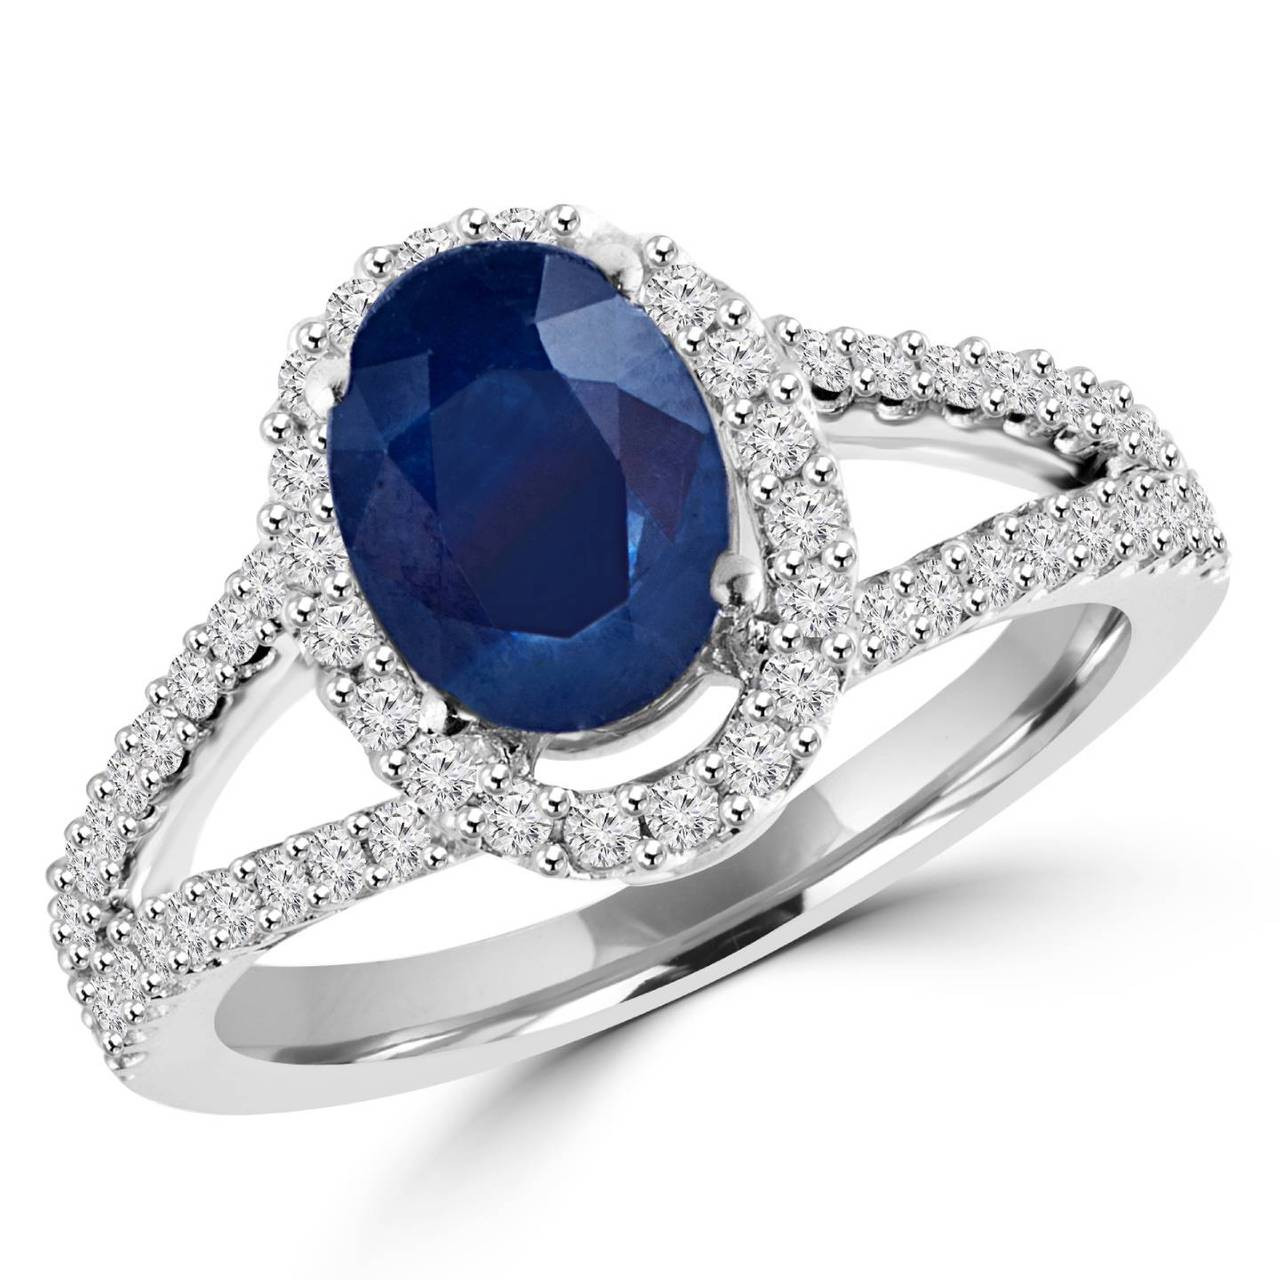 6aff7a5479558 Blue Sapphire Rings | Bijoux Majesty